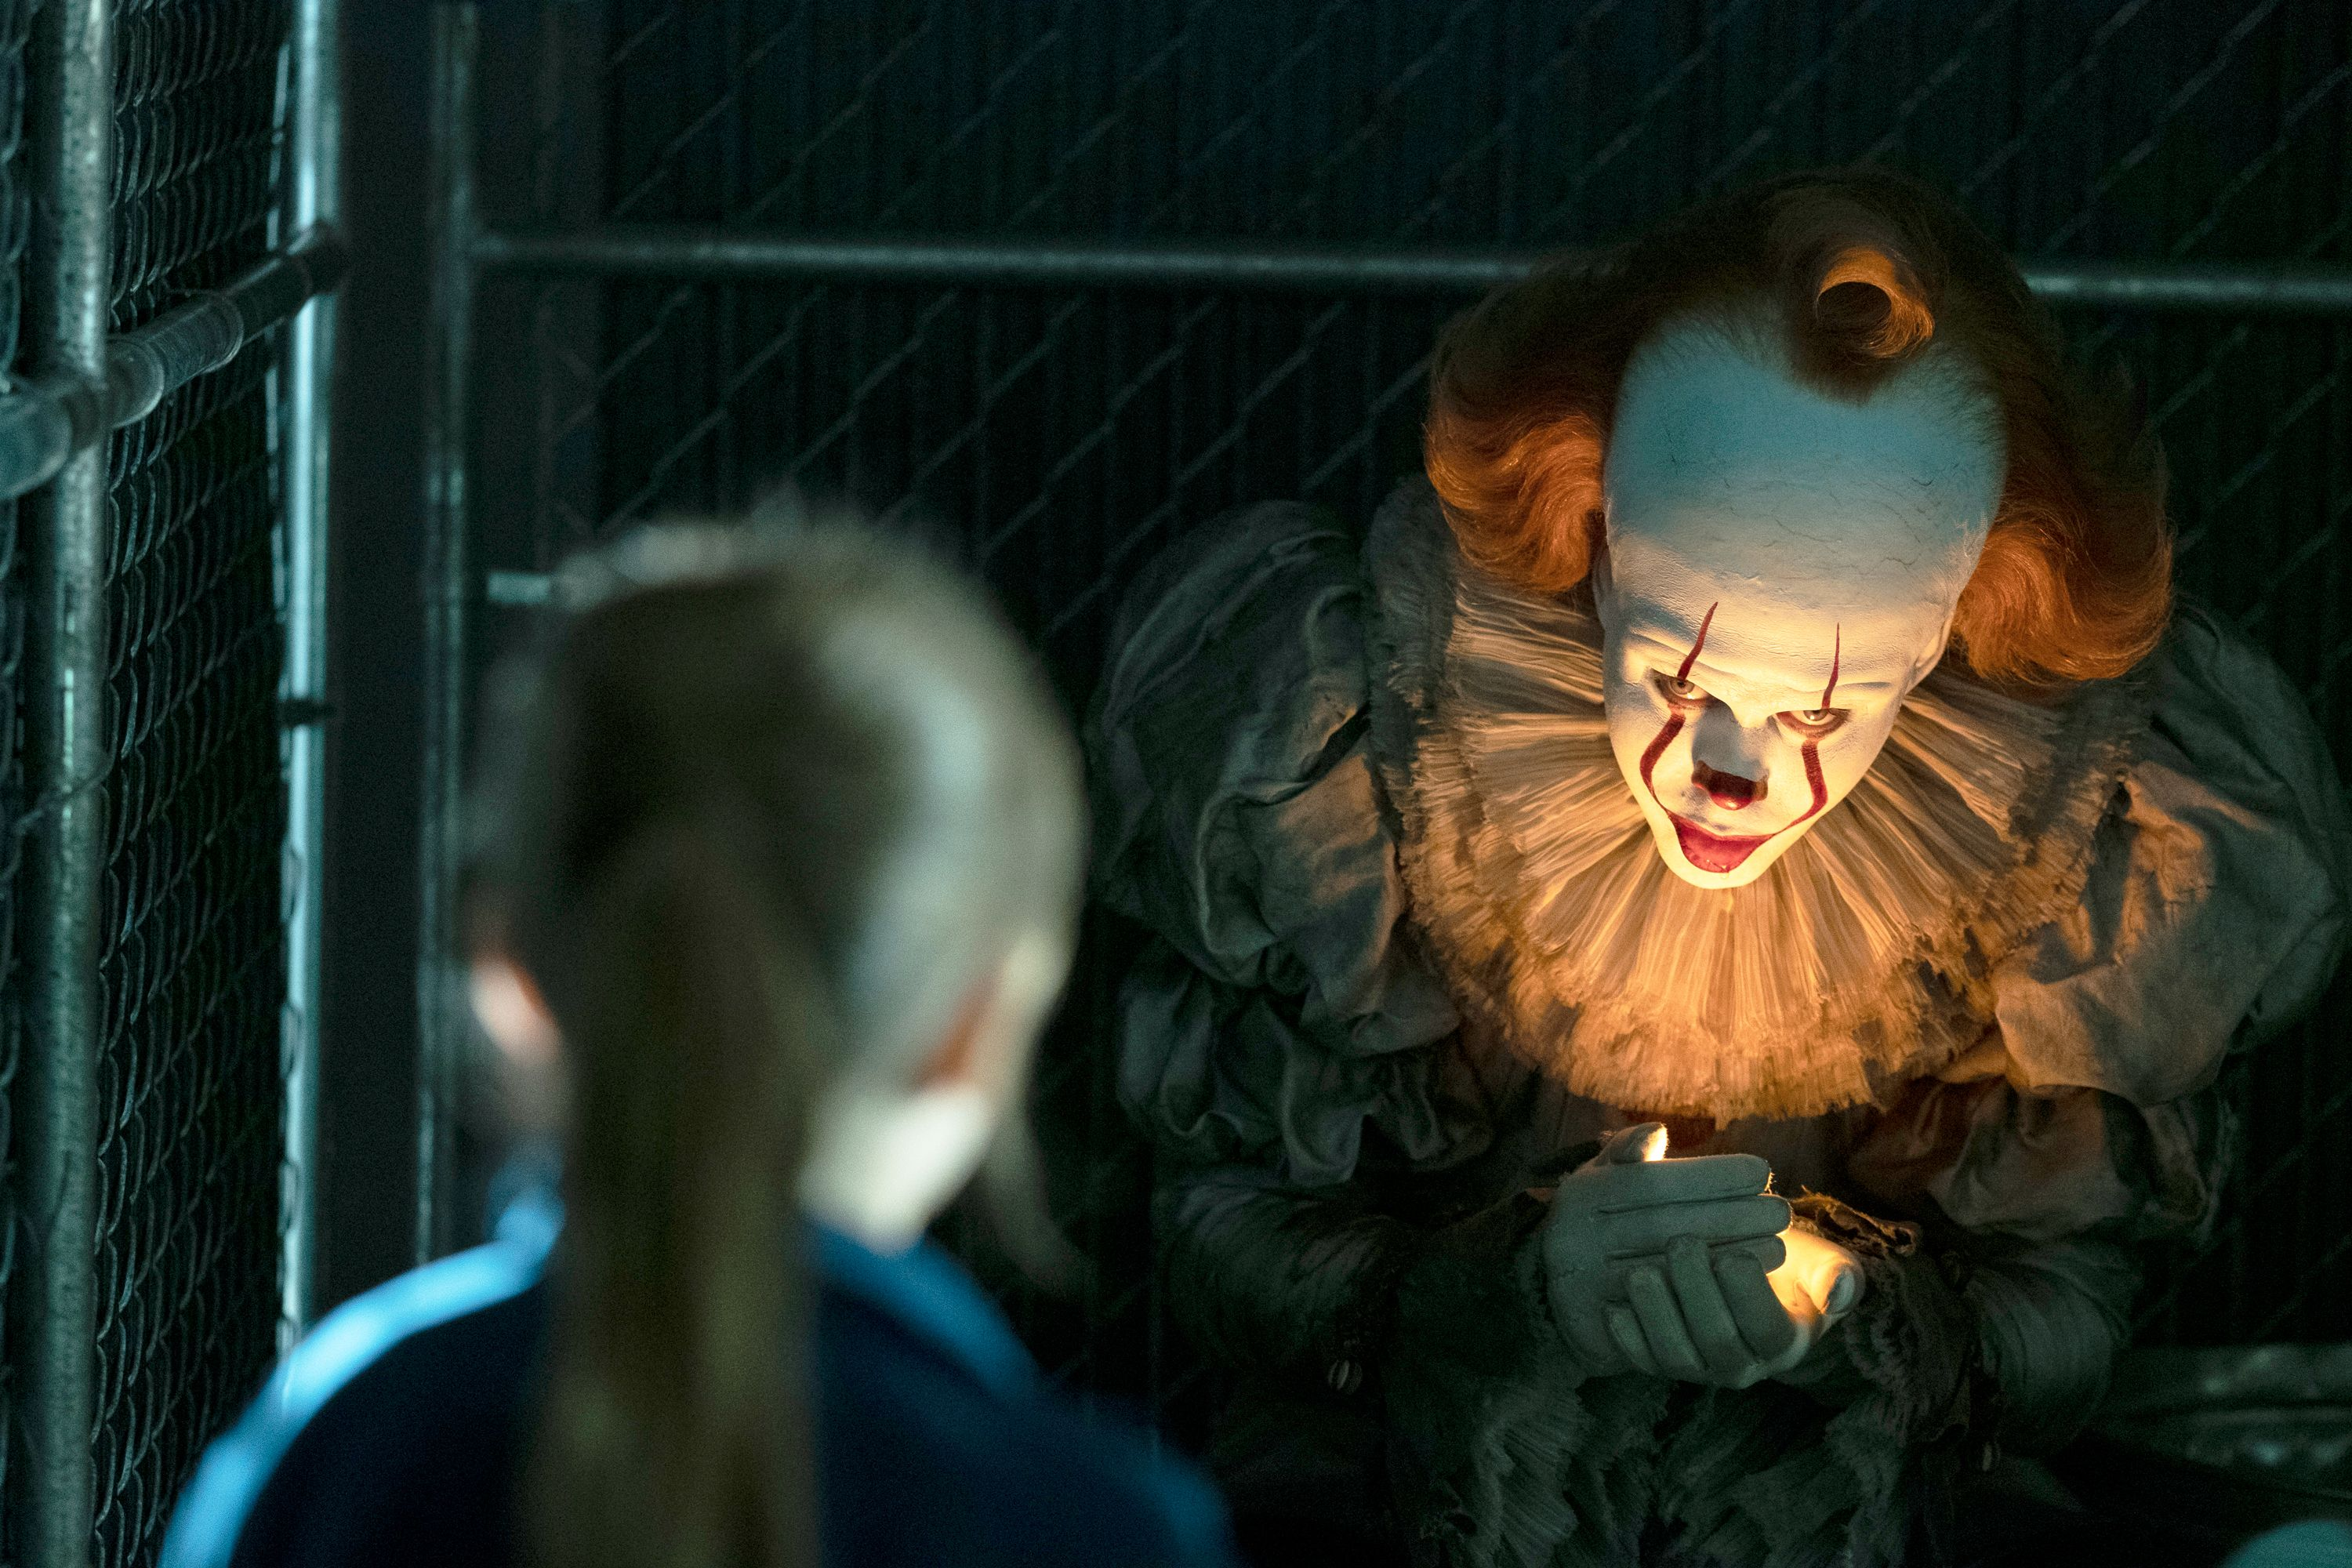 Pennywise holding a firefly in his hand trying to lure in a little girl.